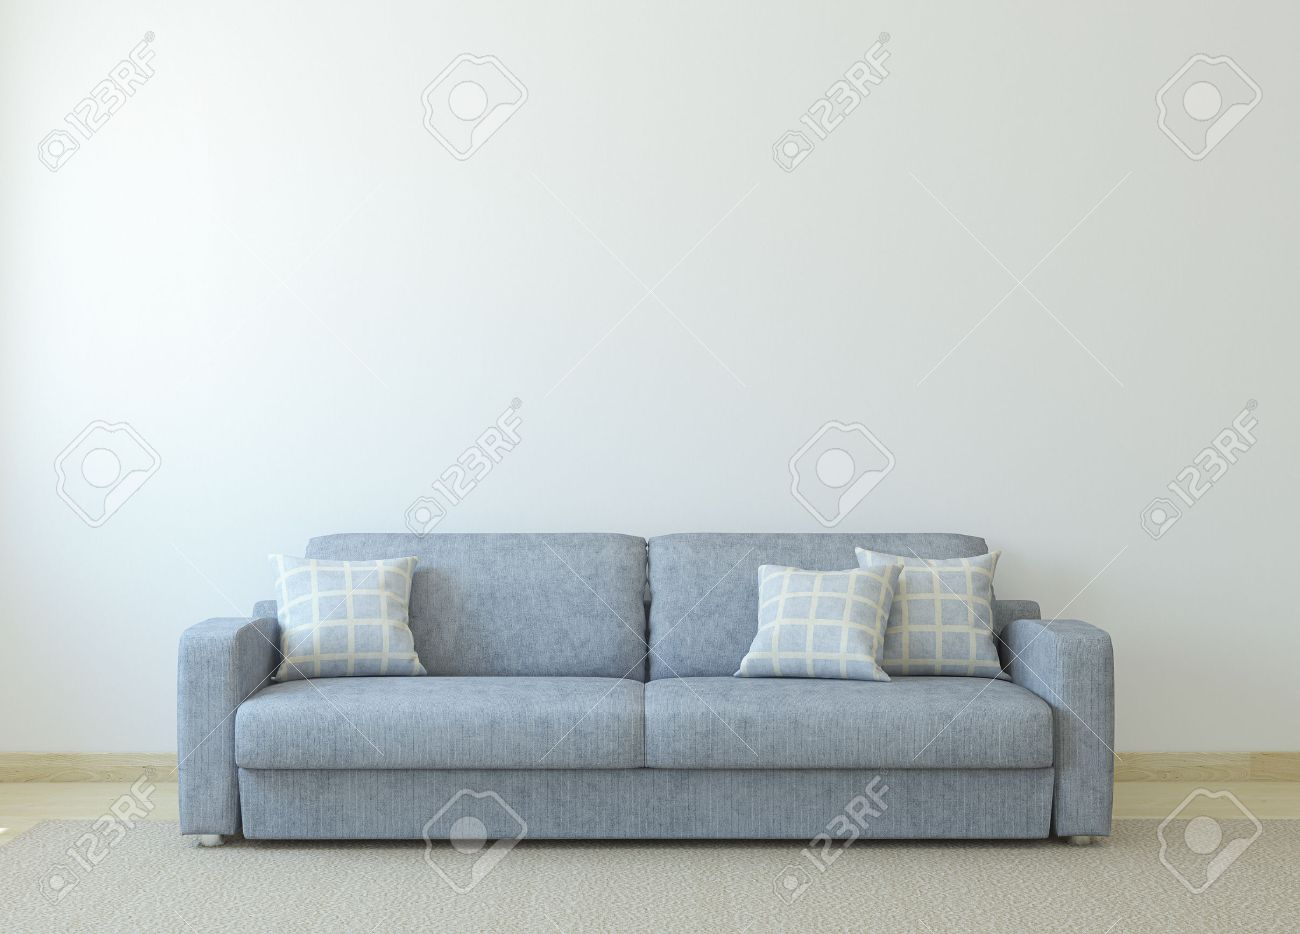 Living Room With White Walls Modern Living Room Interior With Gray Couch Near Empty White